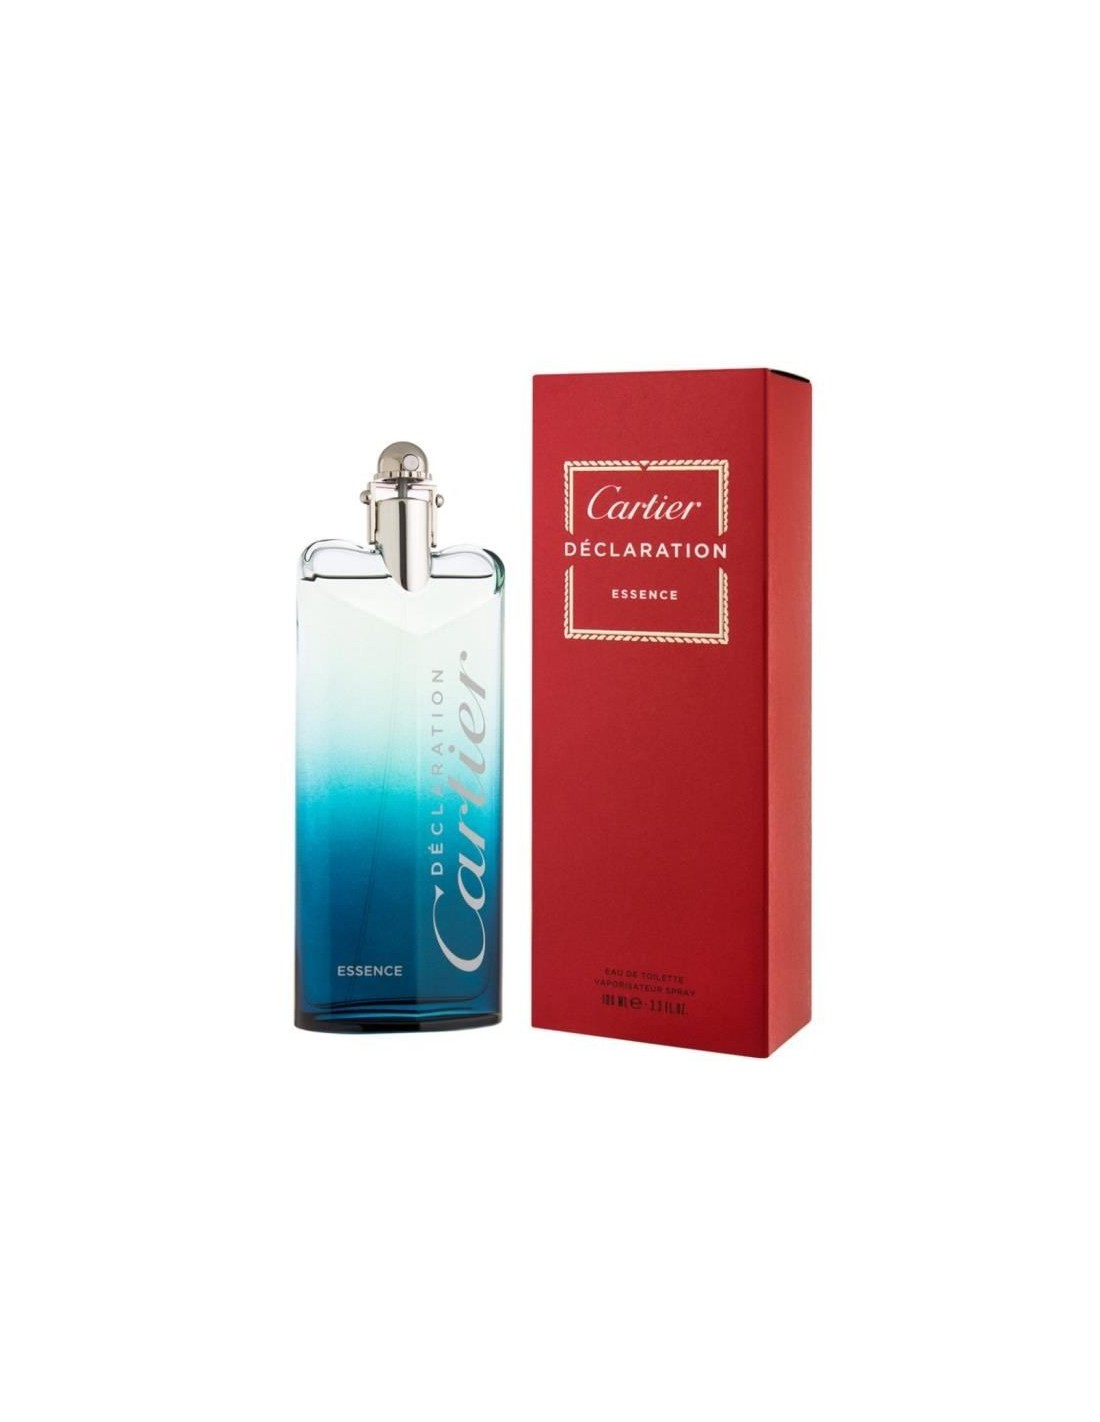 cartier declaration essence eau de toilette 100 ml spray azzurra profumi. Black Bedroom Furniture Sets. Home Design Ideas